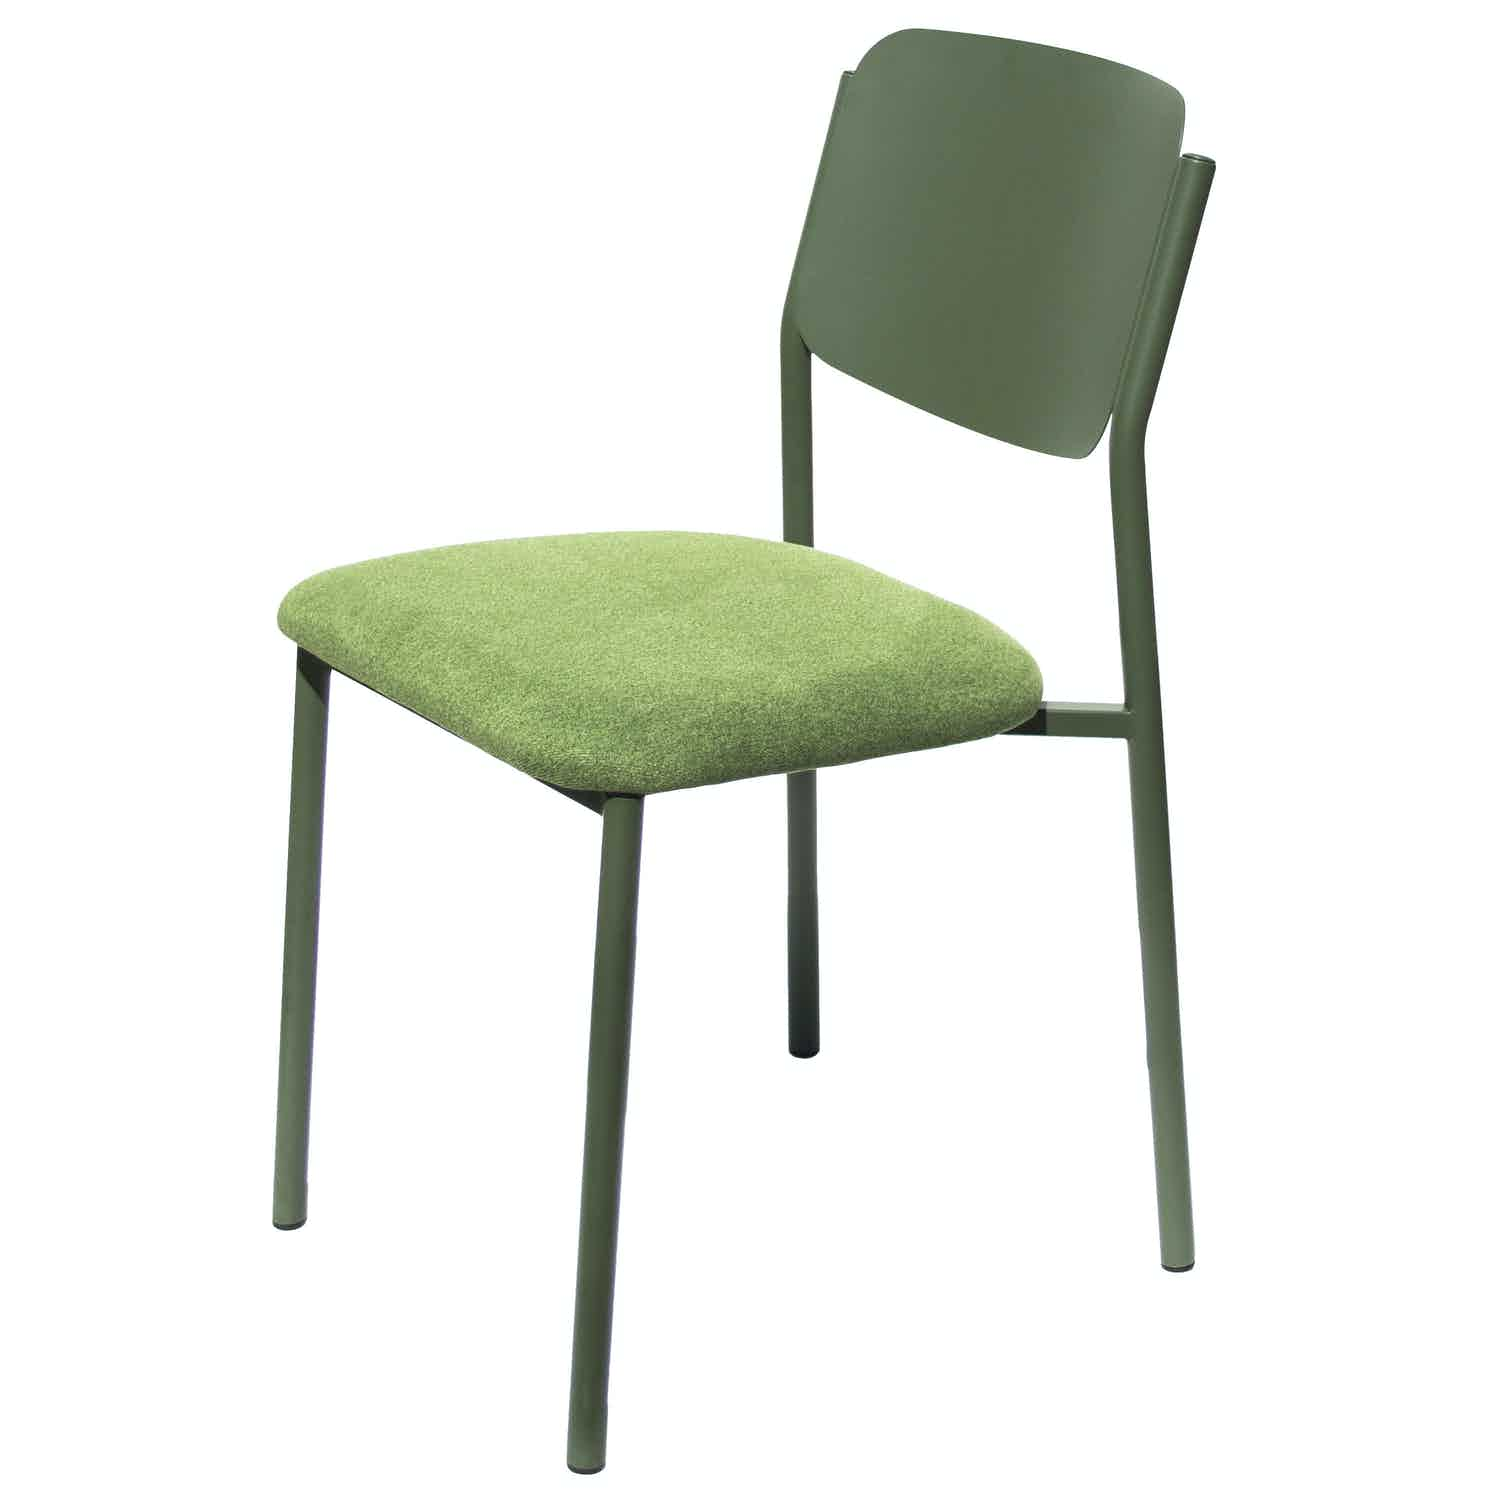 Division-12-resto-cafe-chair-green-haute-living-thumbnail